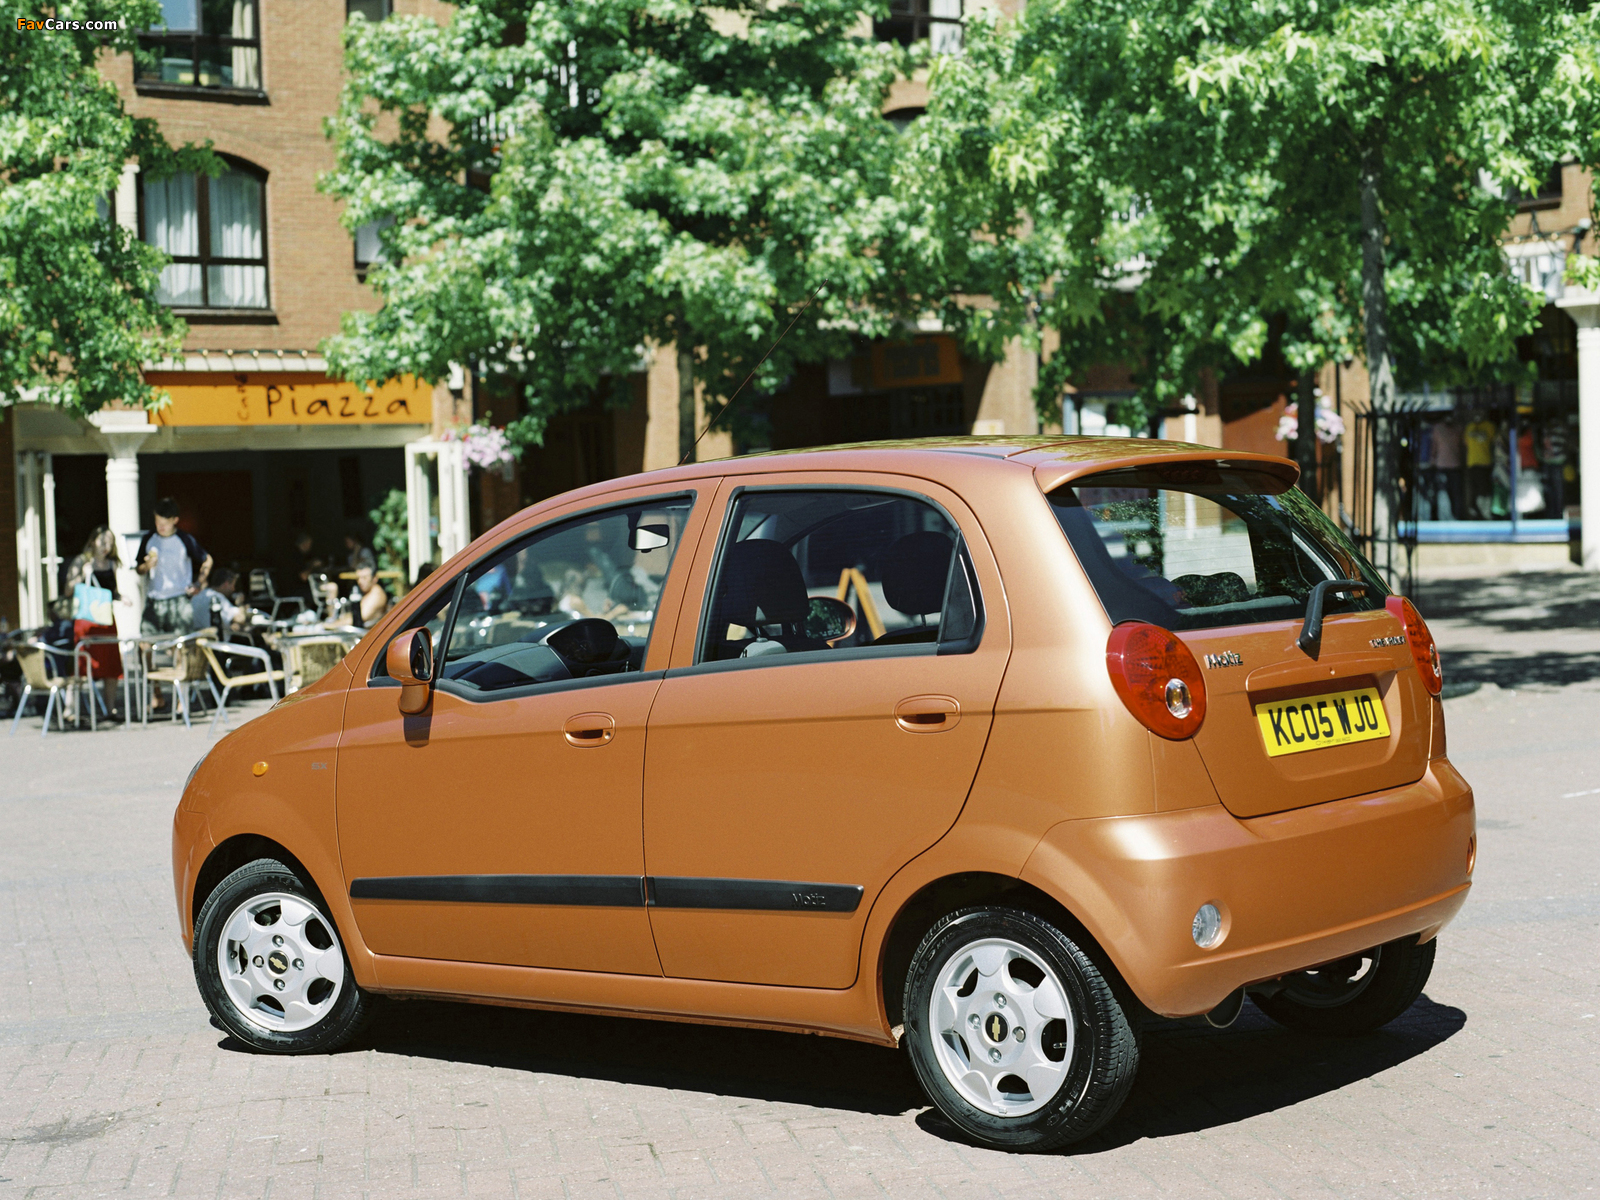 chevrolet matiz uk spec m200 2005 07 photos 1600x1200. Black Bedroom Furniture Sets. Home Design Ideas